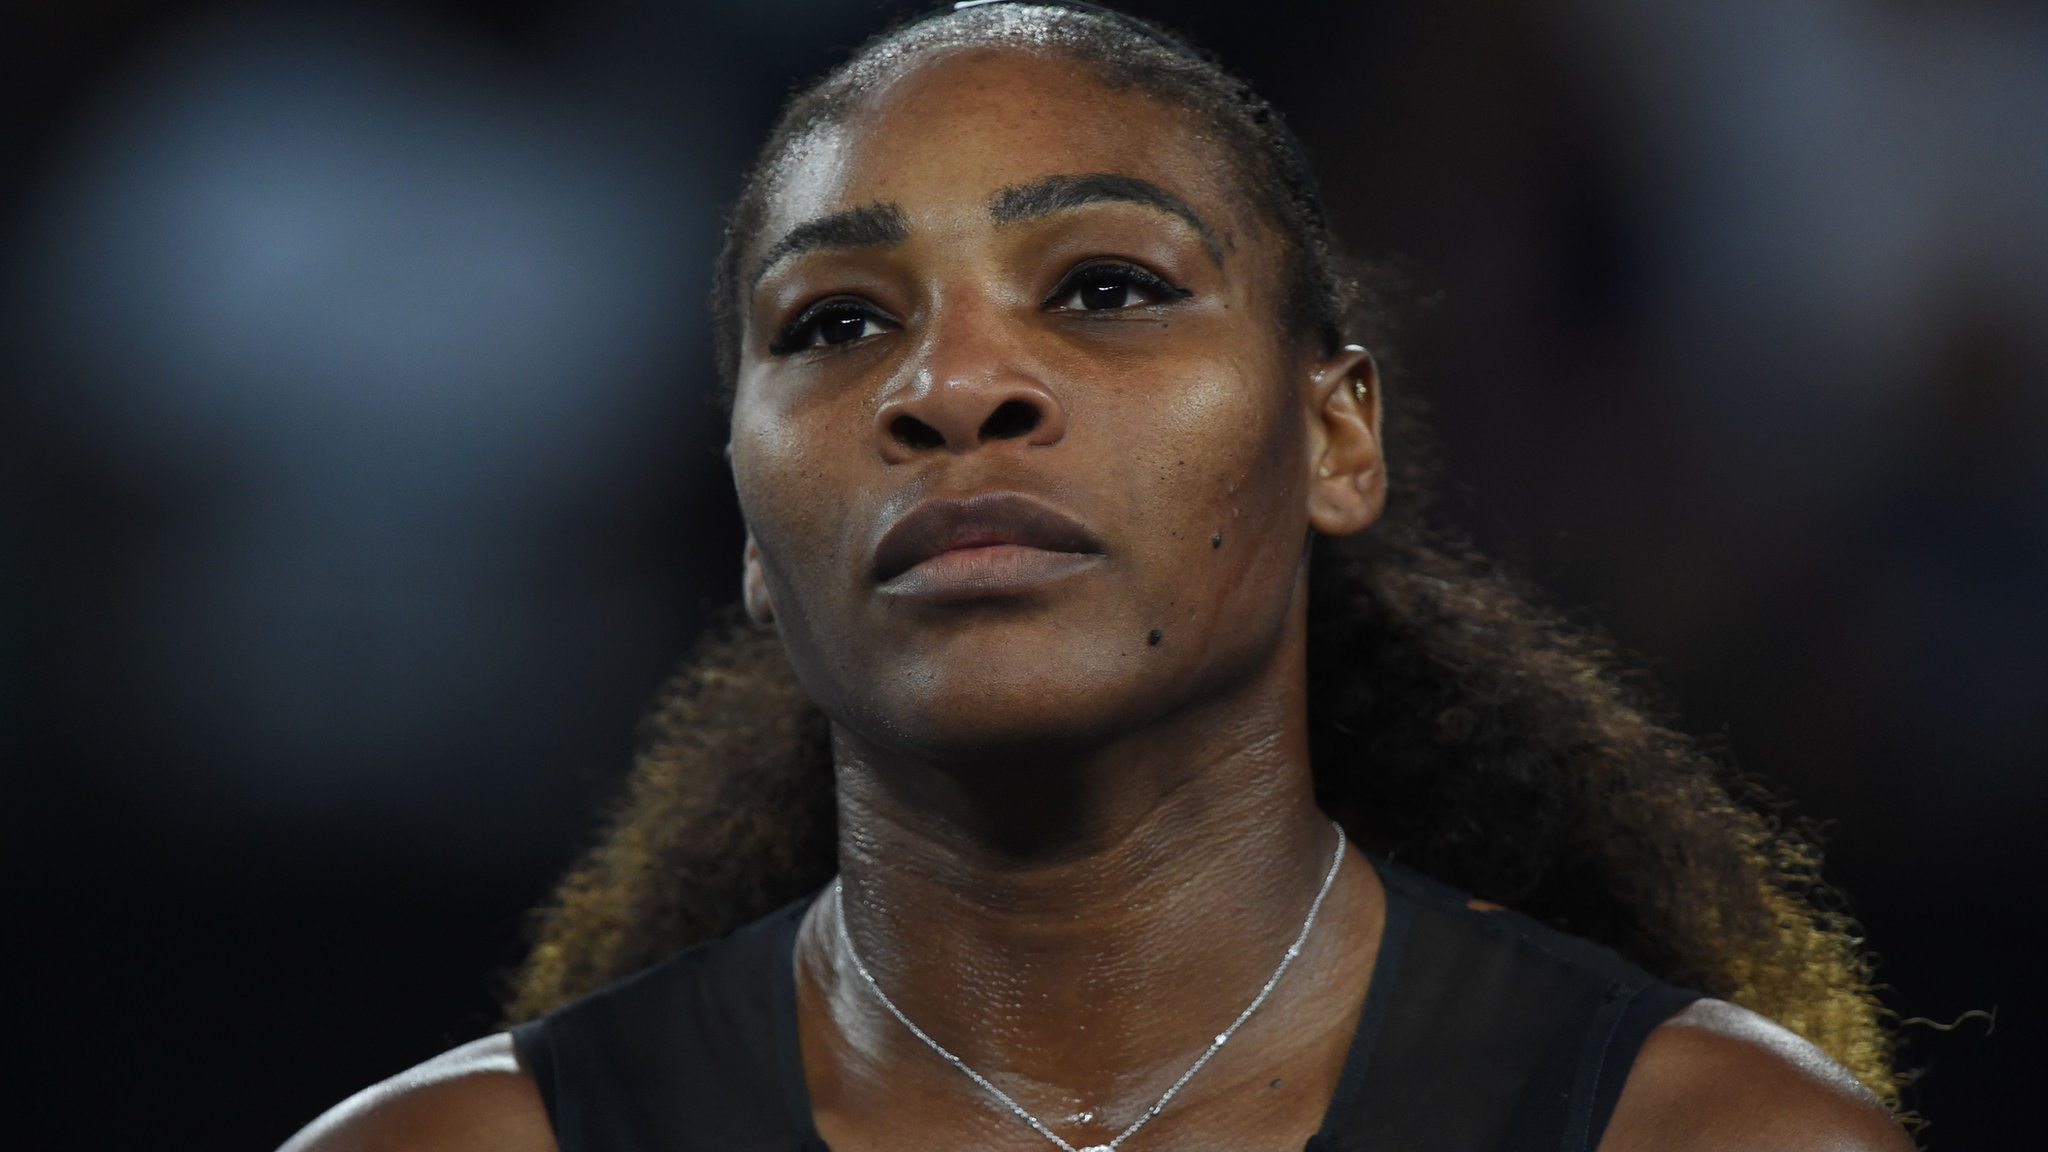 Serena Williams calls Ilie Nastase comments 'racist' and backs investigation